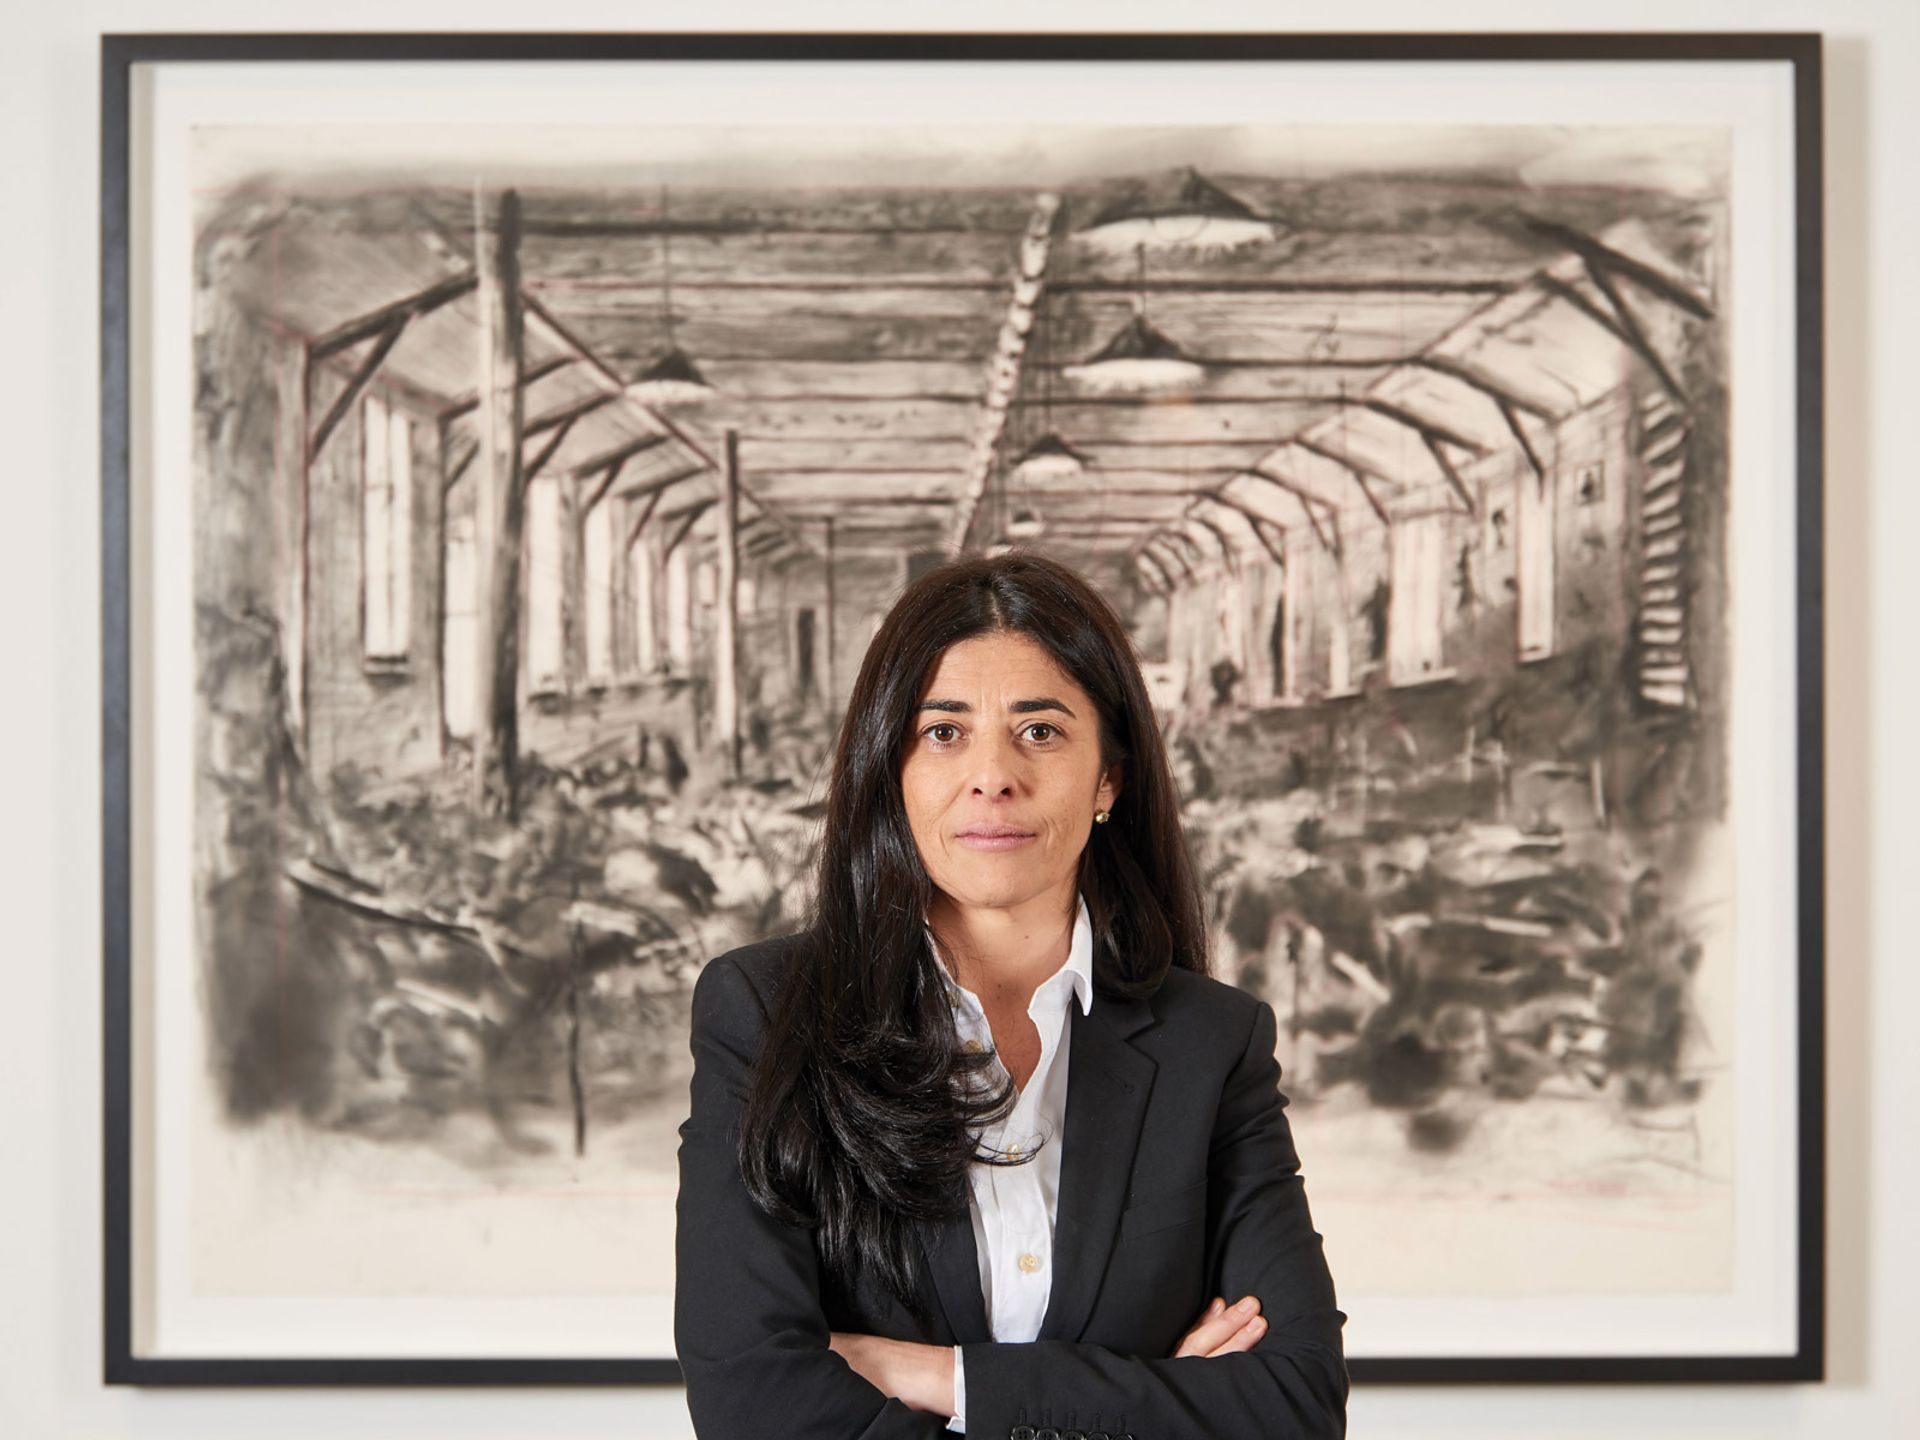 Liza Essers is working to bring previously excluded groups into the audience and collector base for contemporary art Courtesy Goodman gallery, Anthea Pokroy